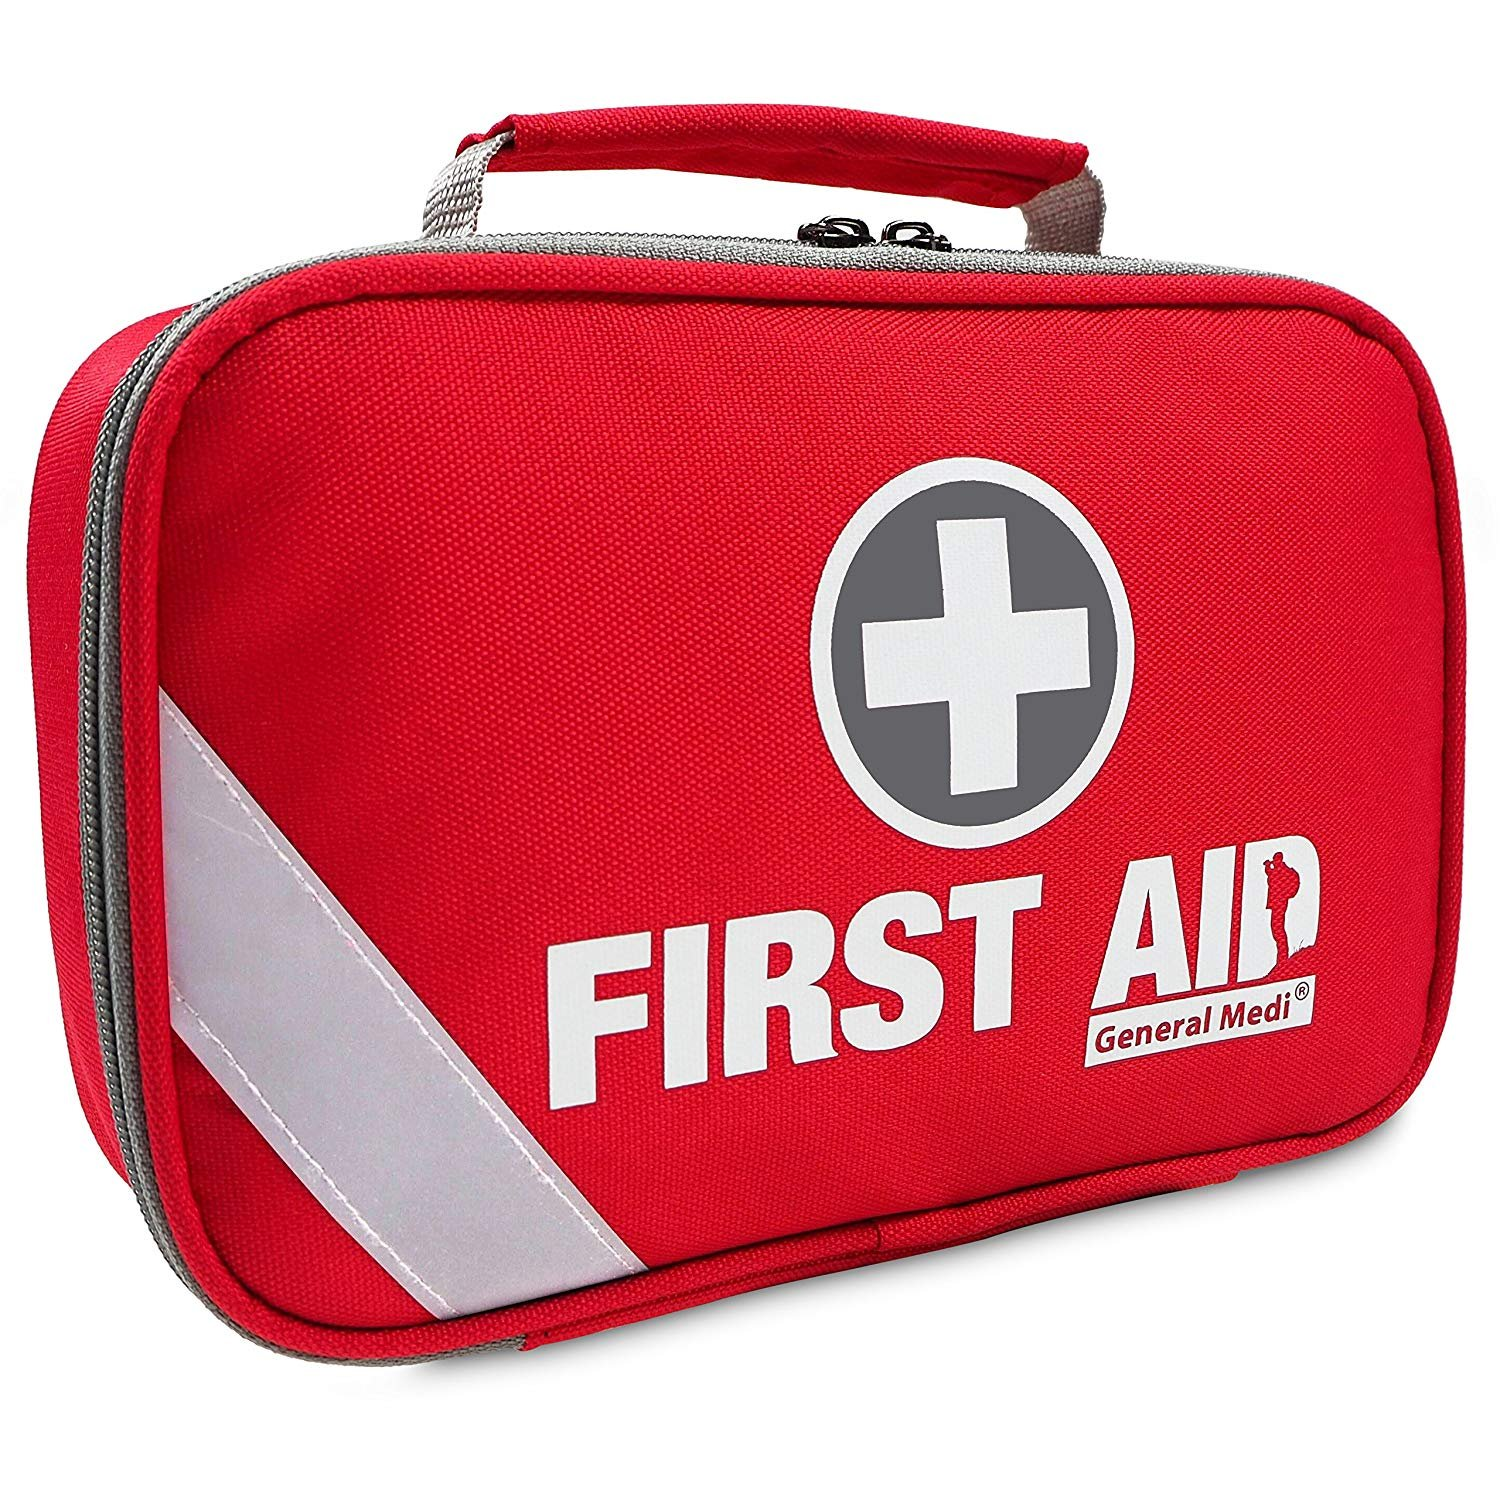 2-in-1 First Aid Kit (215 Piece) + Bonus 43 Piece Mini First Aid Kit - Includes Emergency Foil Blanket,CPR Face Mask,Scissors for Travel, Home, Office, Vehicle,Camping, Workplace & Outdoor (Red)